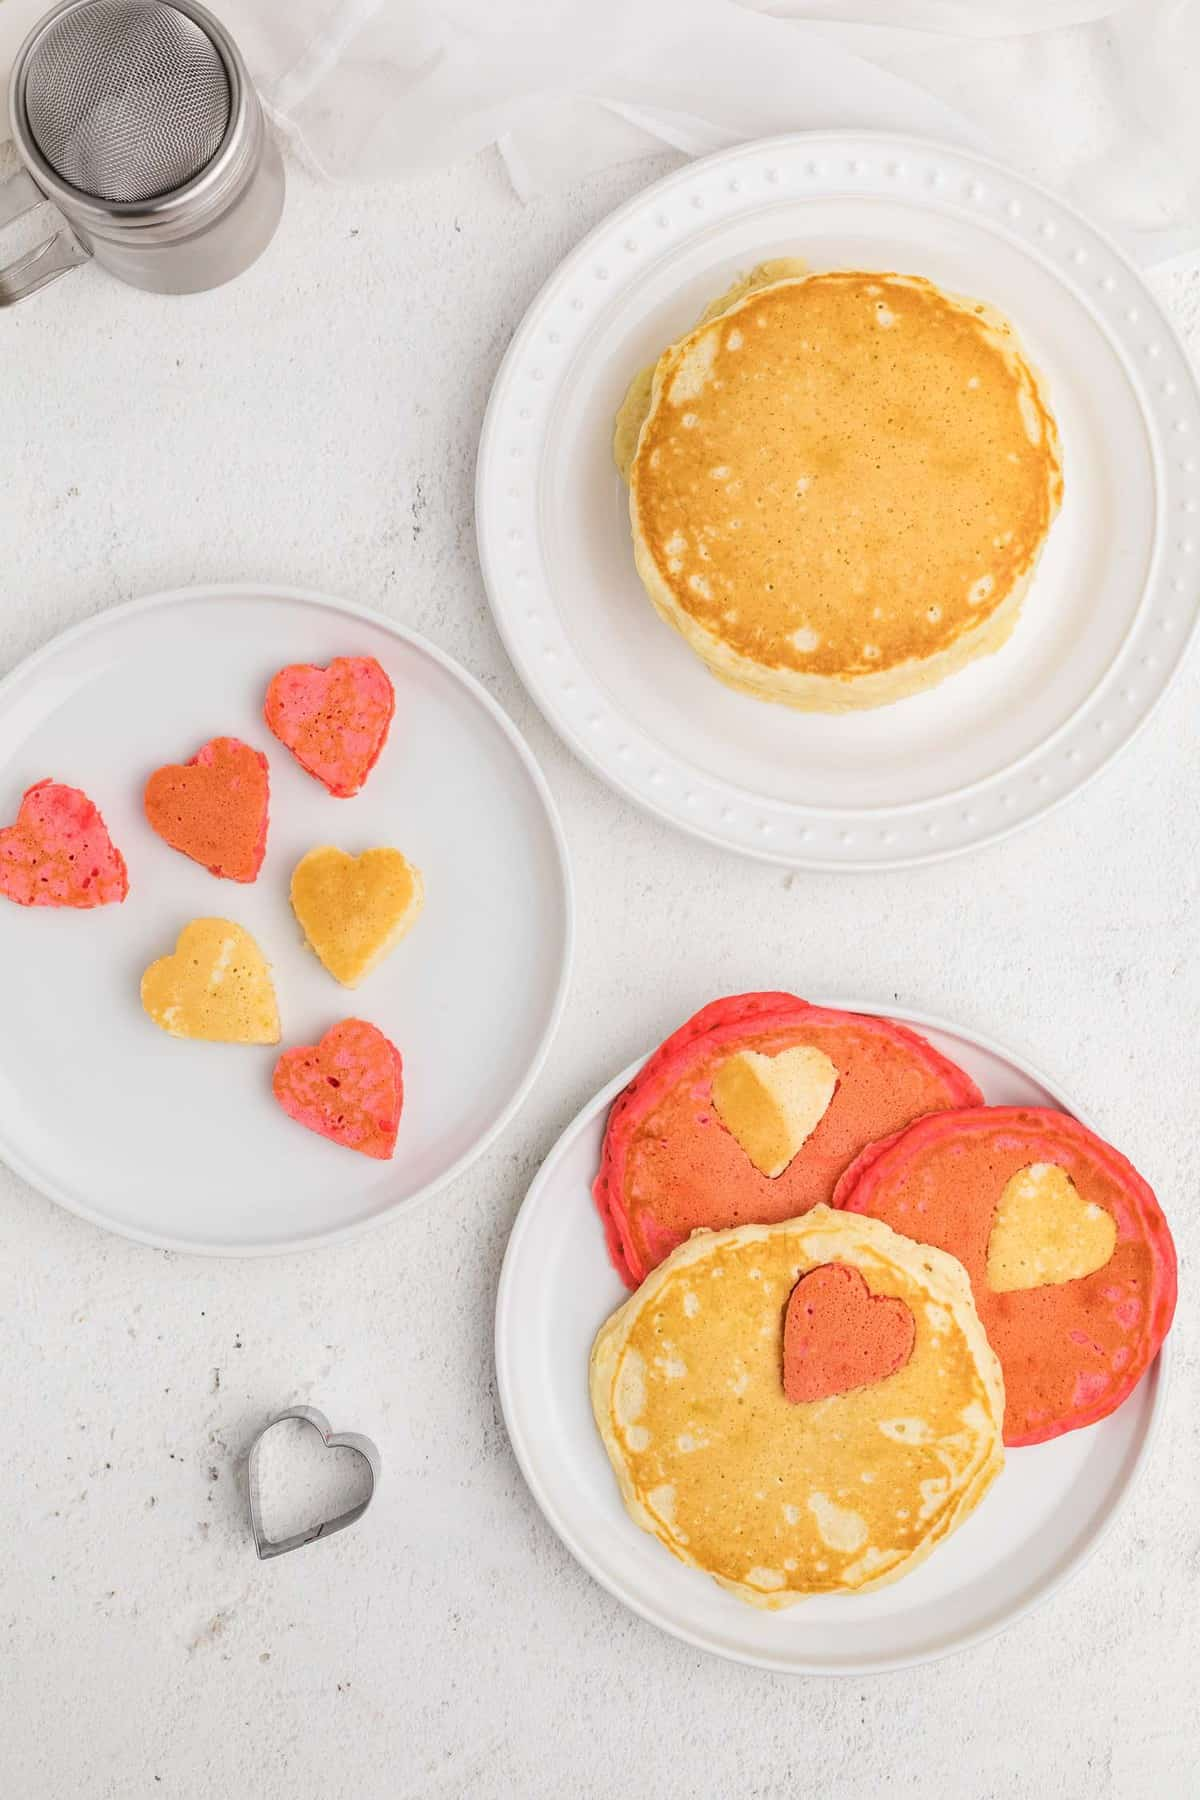 Overhead view of pink and white pancakes with heart shaped cut-outs.